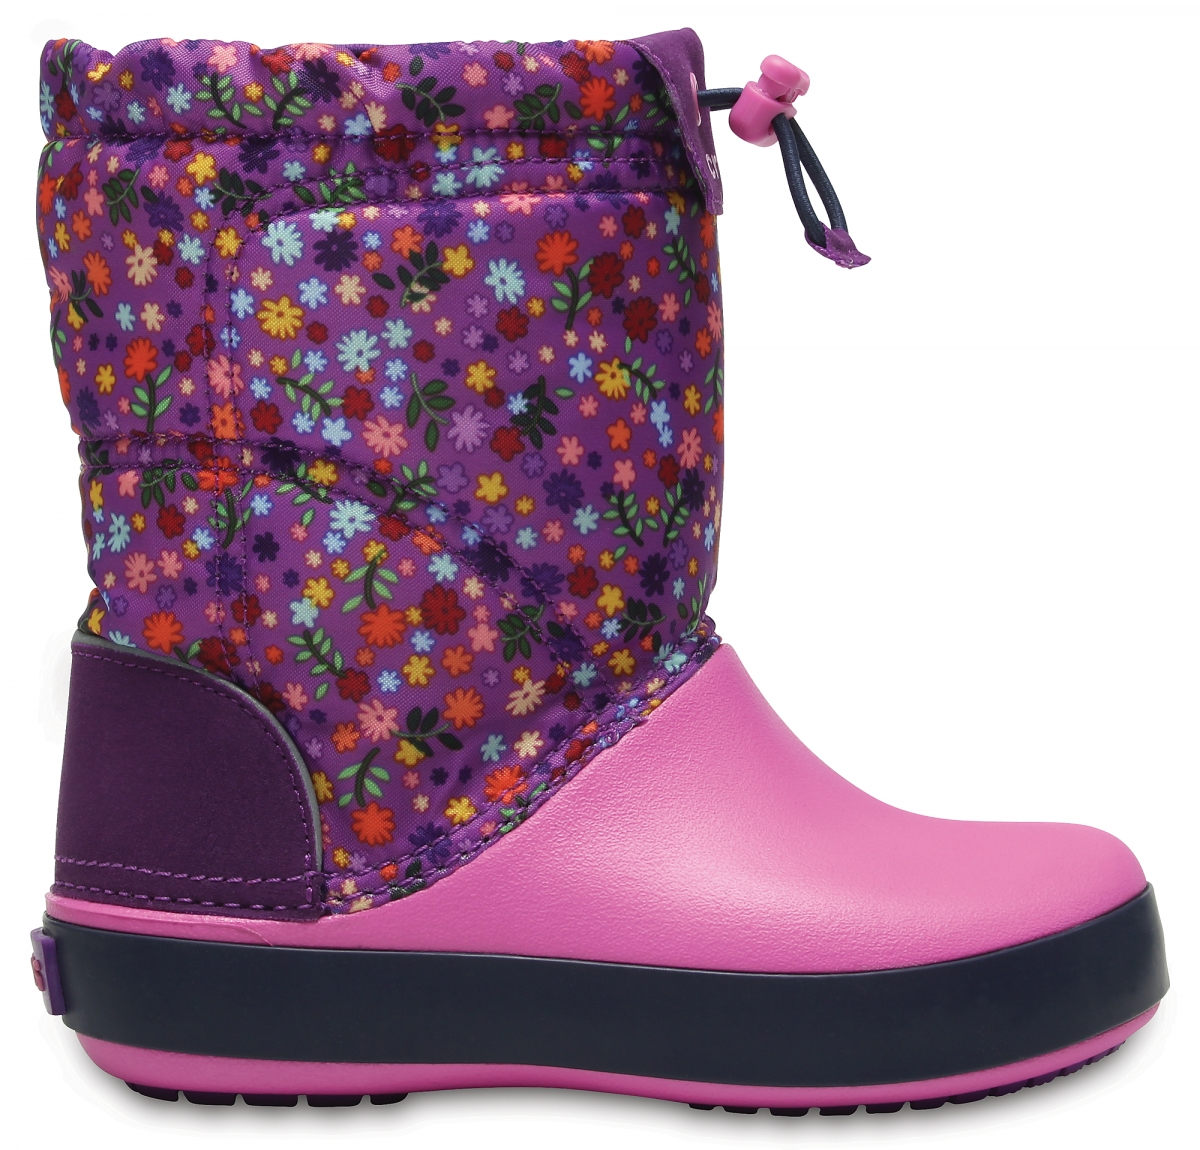 Crocs Crocband LodgePoint Graphic Boot Kids - Amethyst/Party Pink, C12 (29-30)